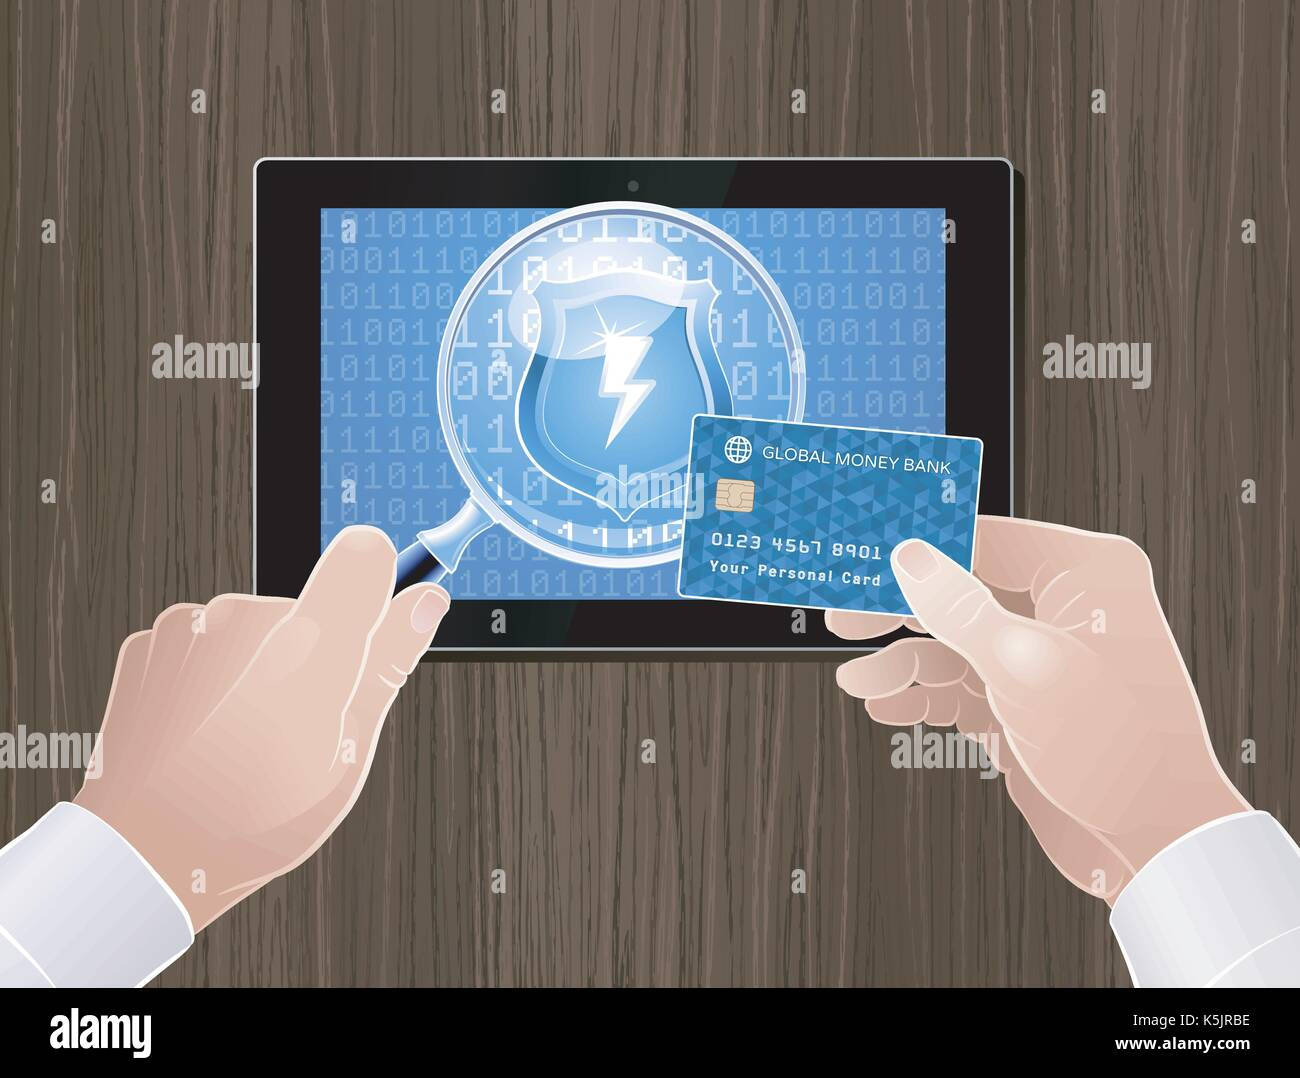 Safety/Secure Online Payments - Stock Image